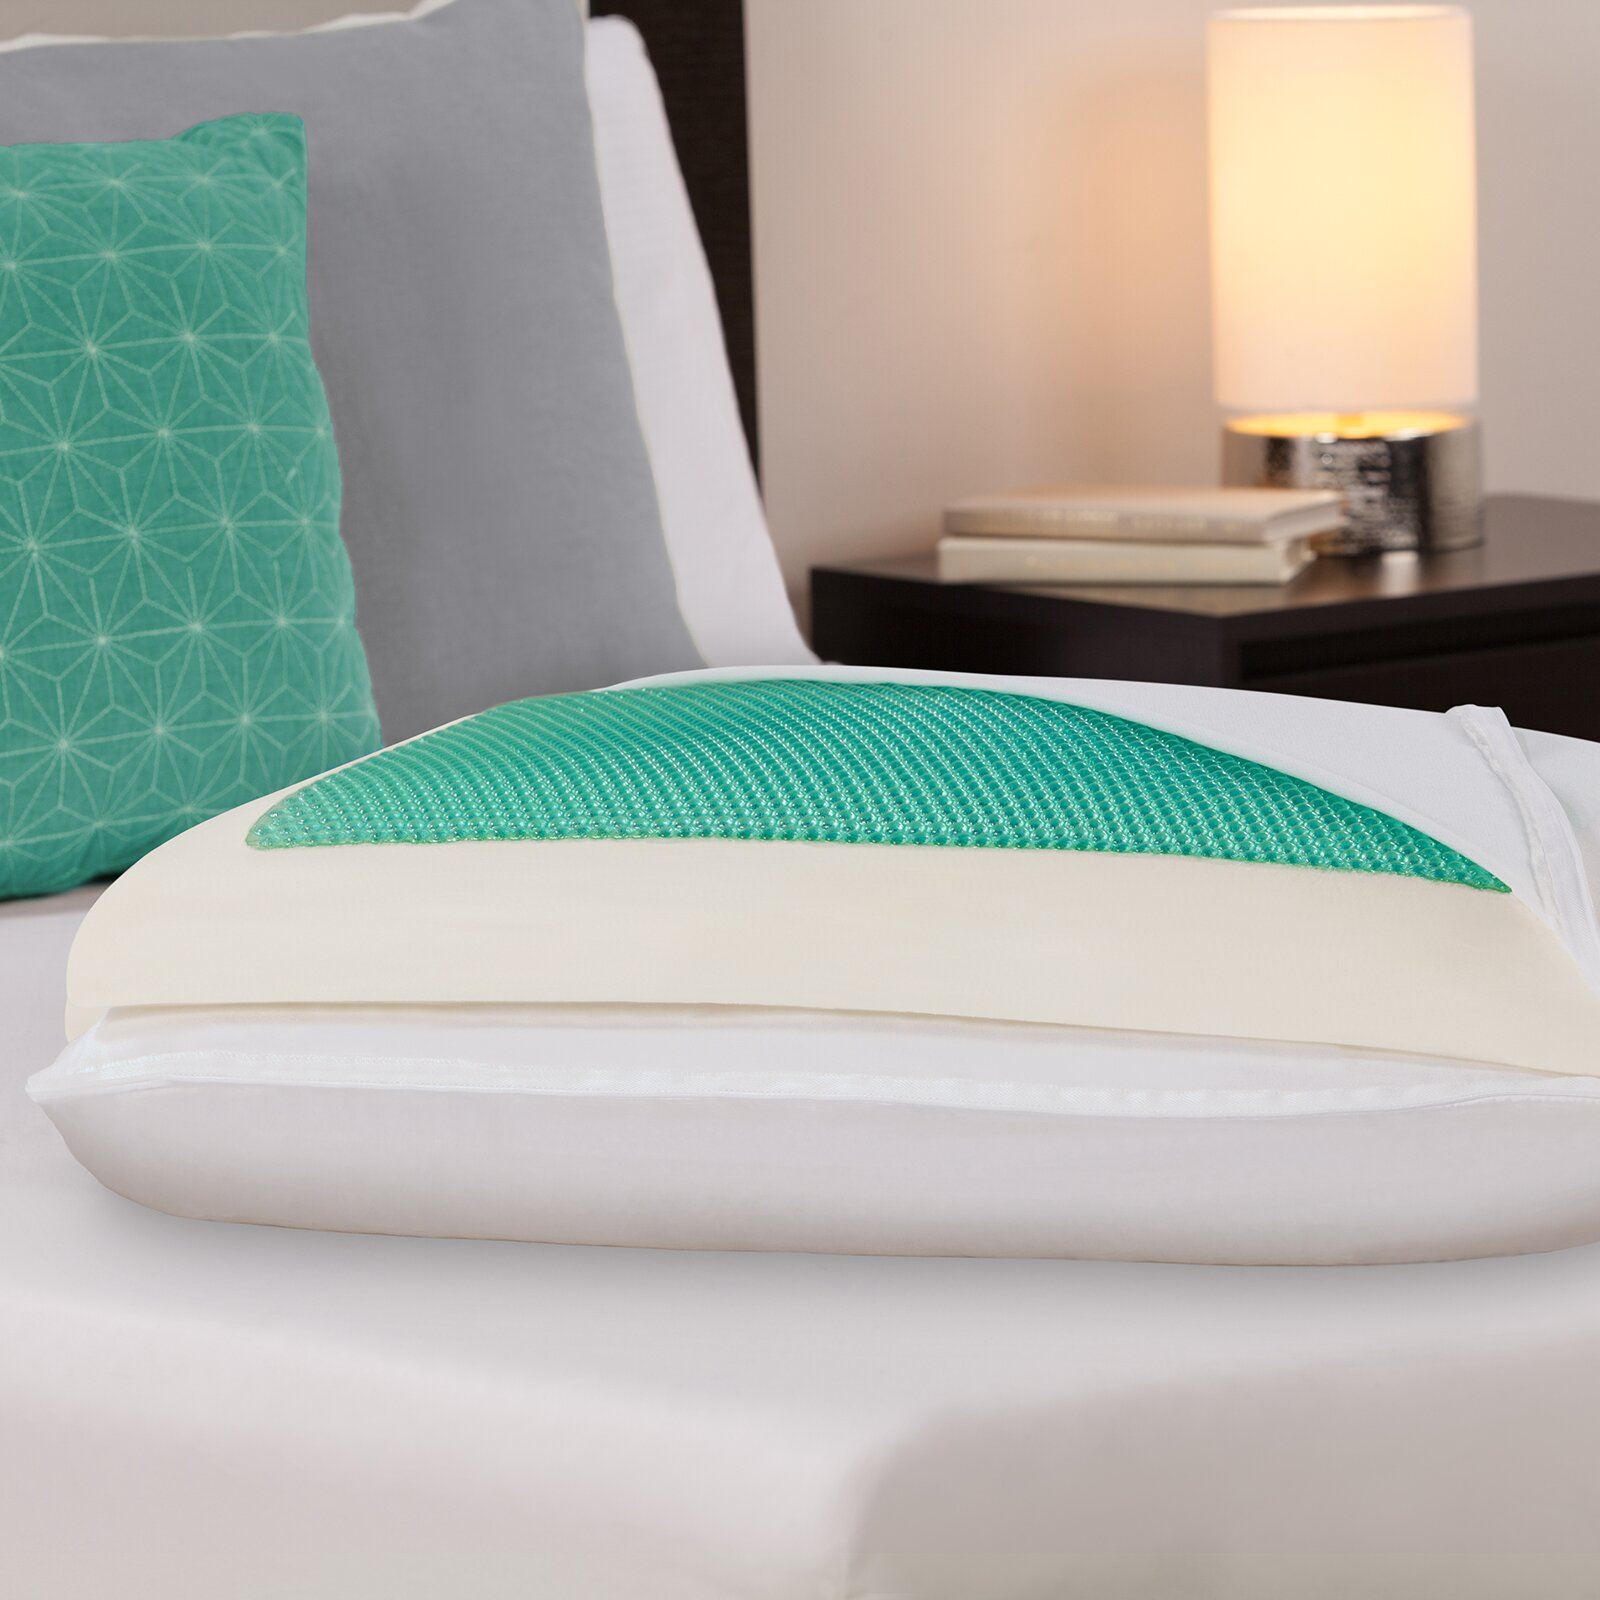 Comfort revolution dreamfinity comfort plus half and half for Comfort revolution king pillow